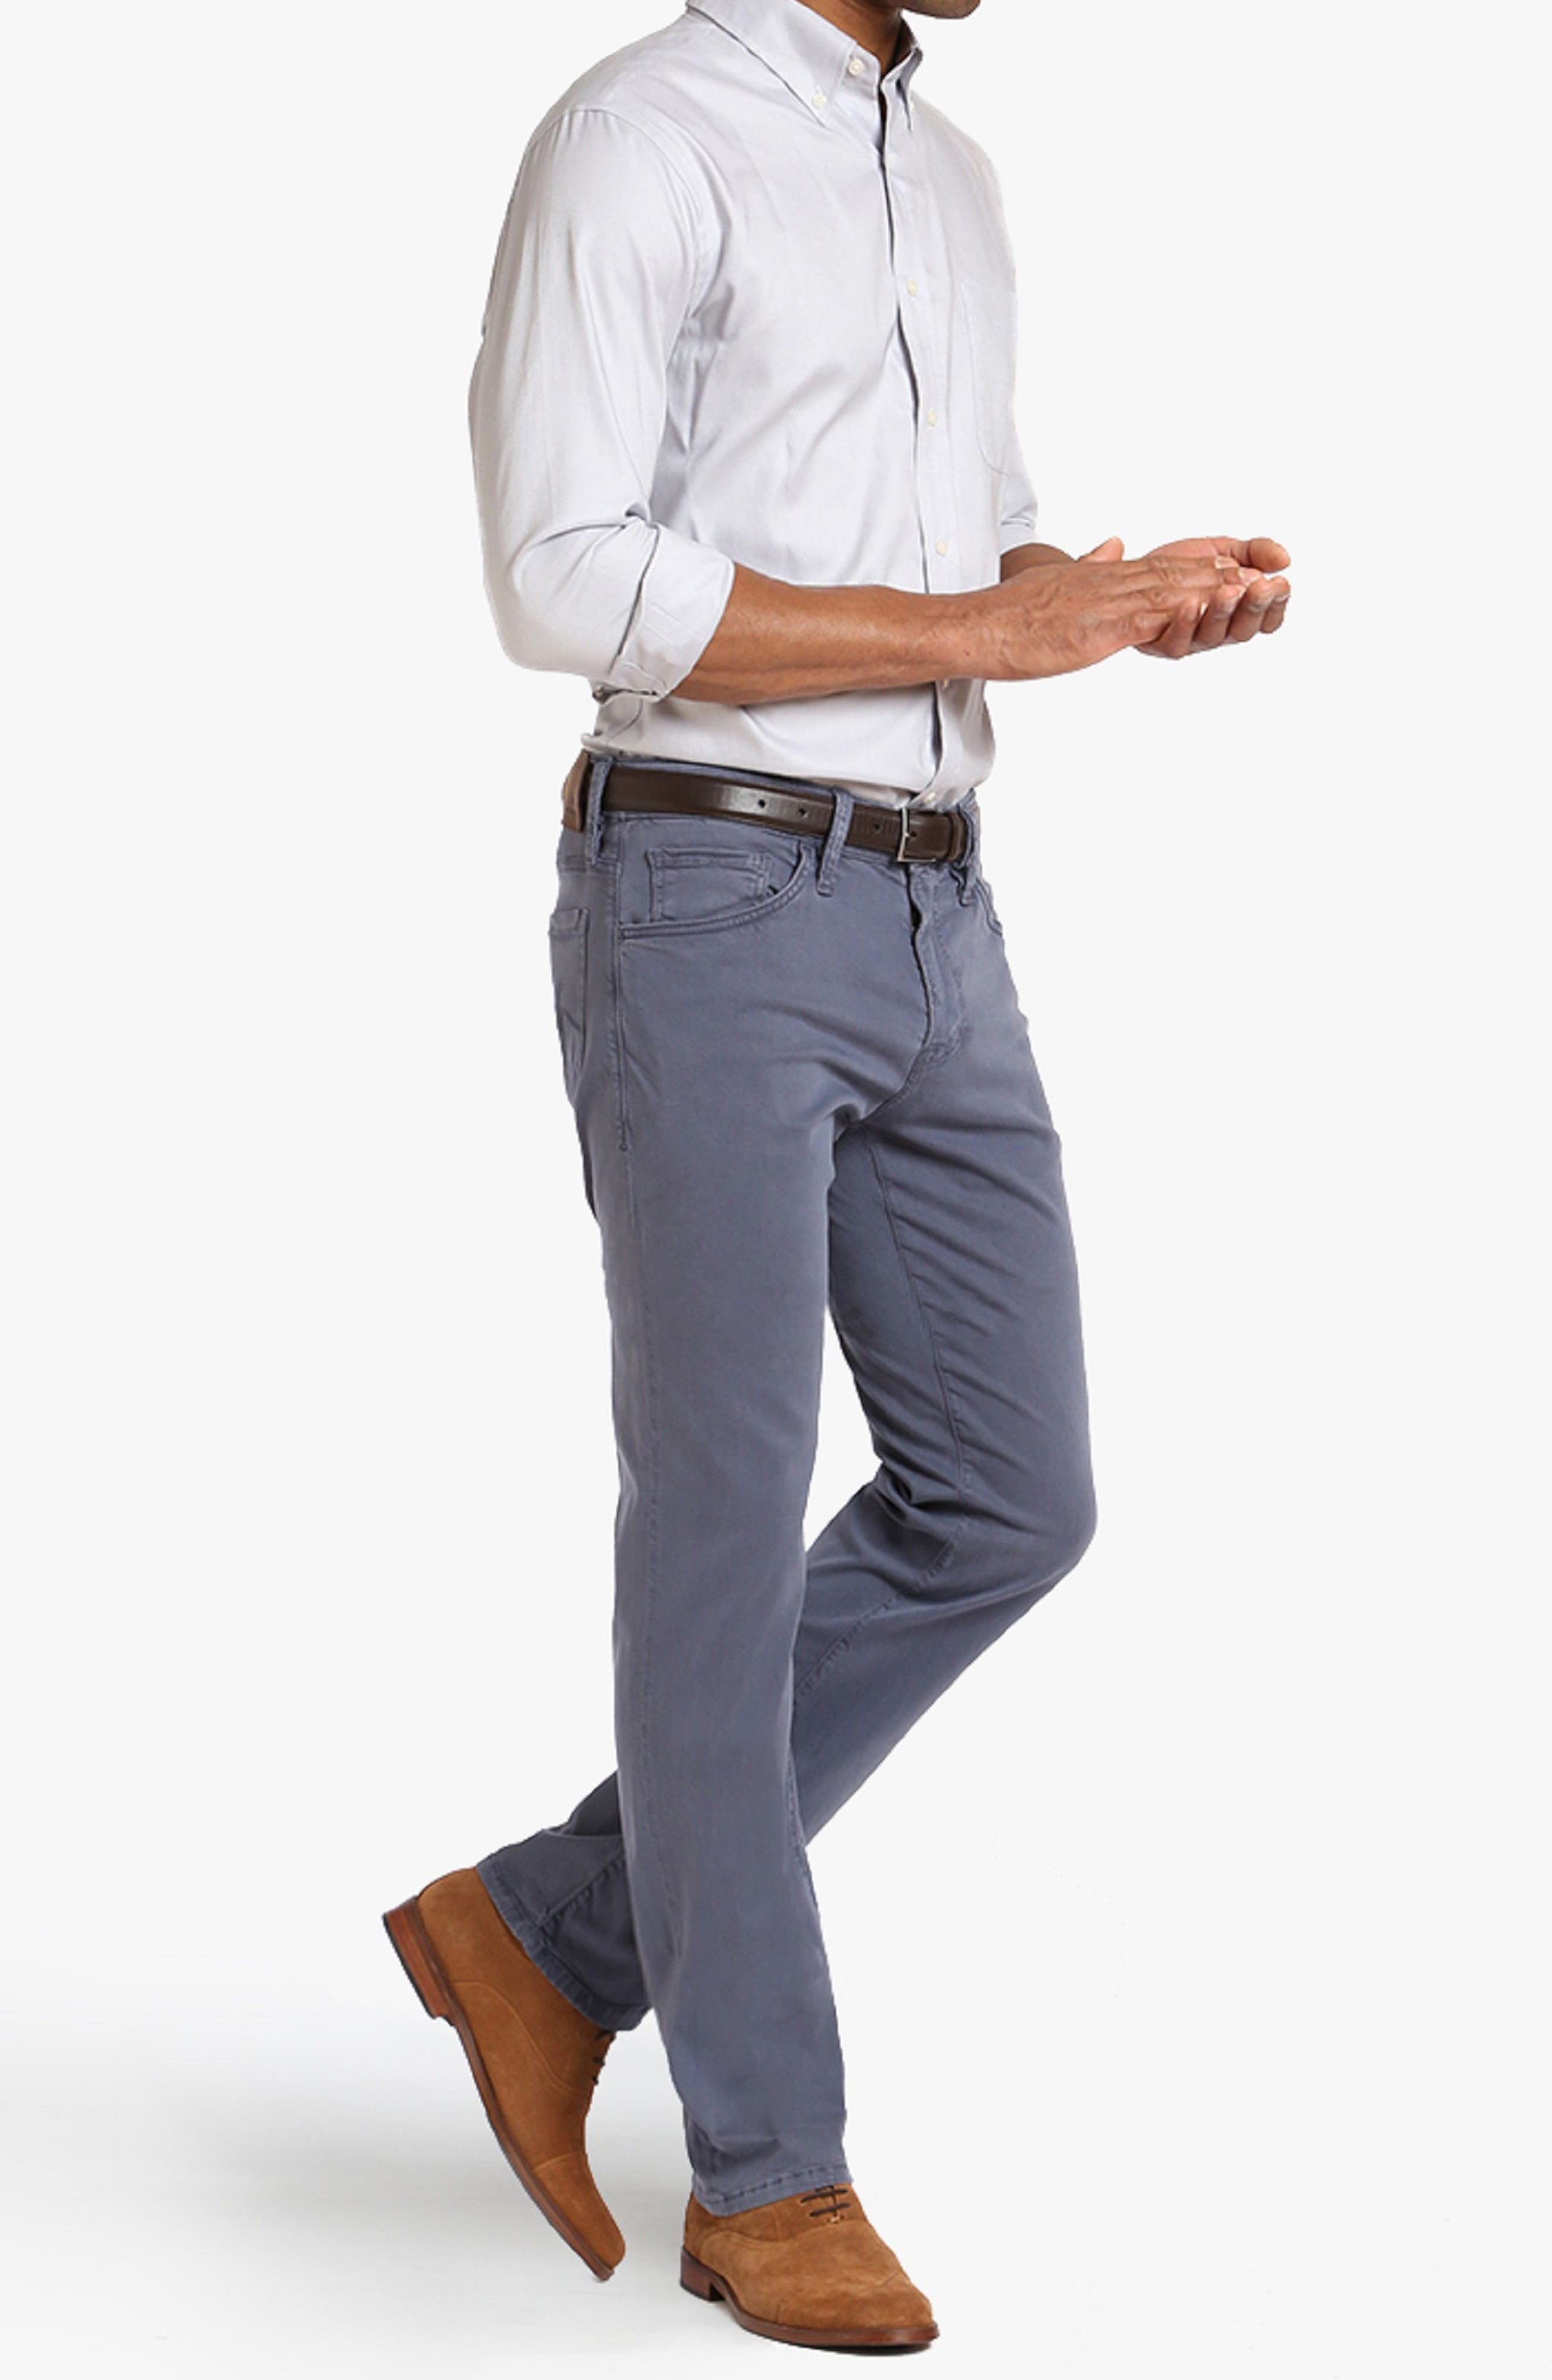 Charisma Relaxed Fit Jeans,                             Alternate thumbnail 5, color,                             450